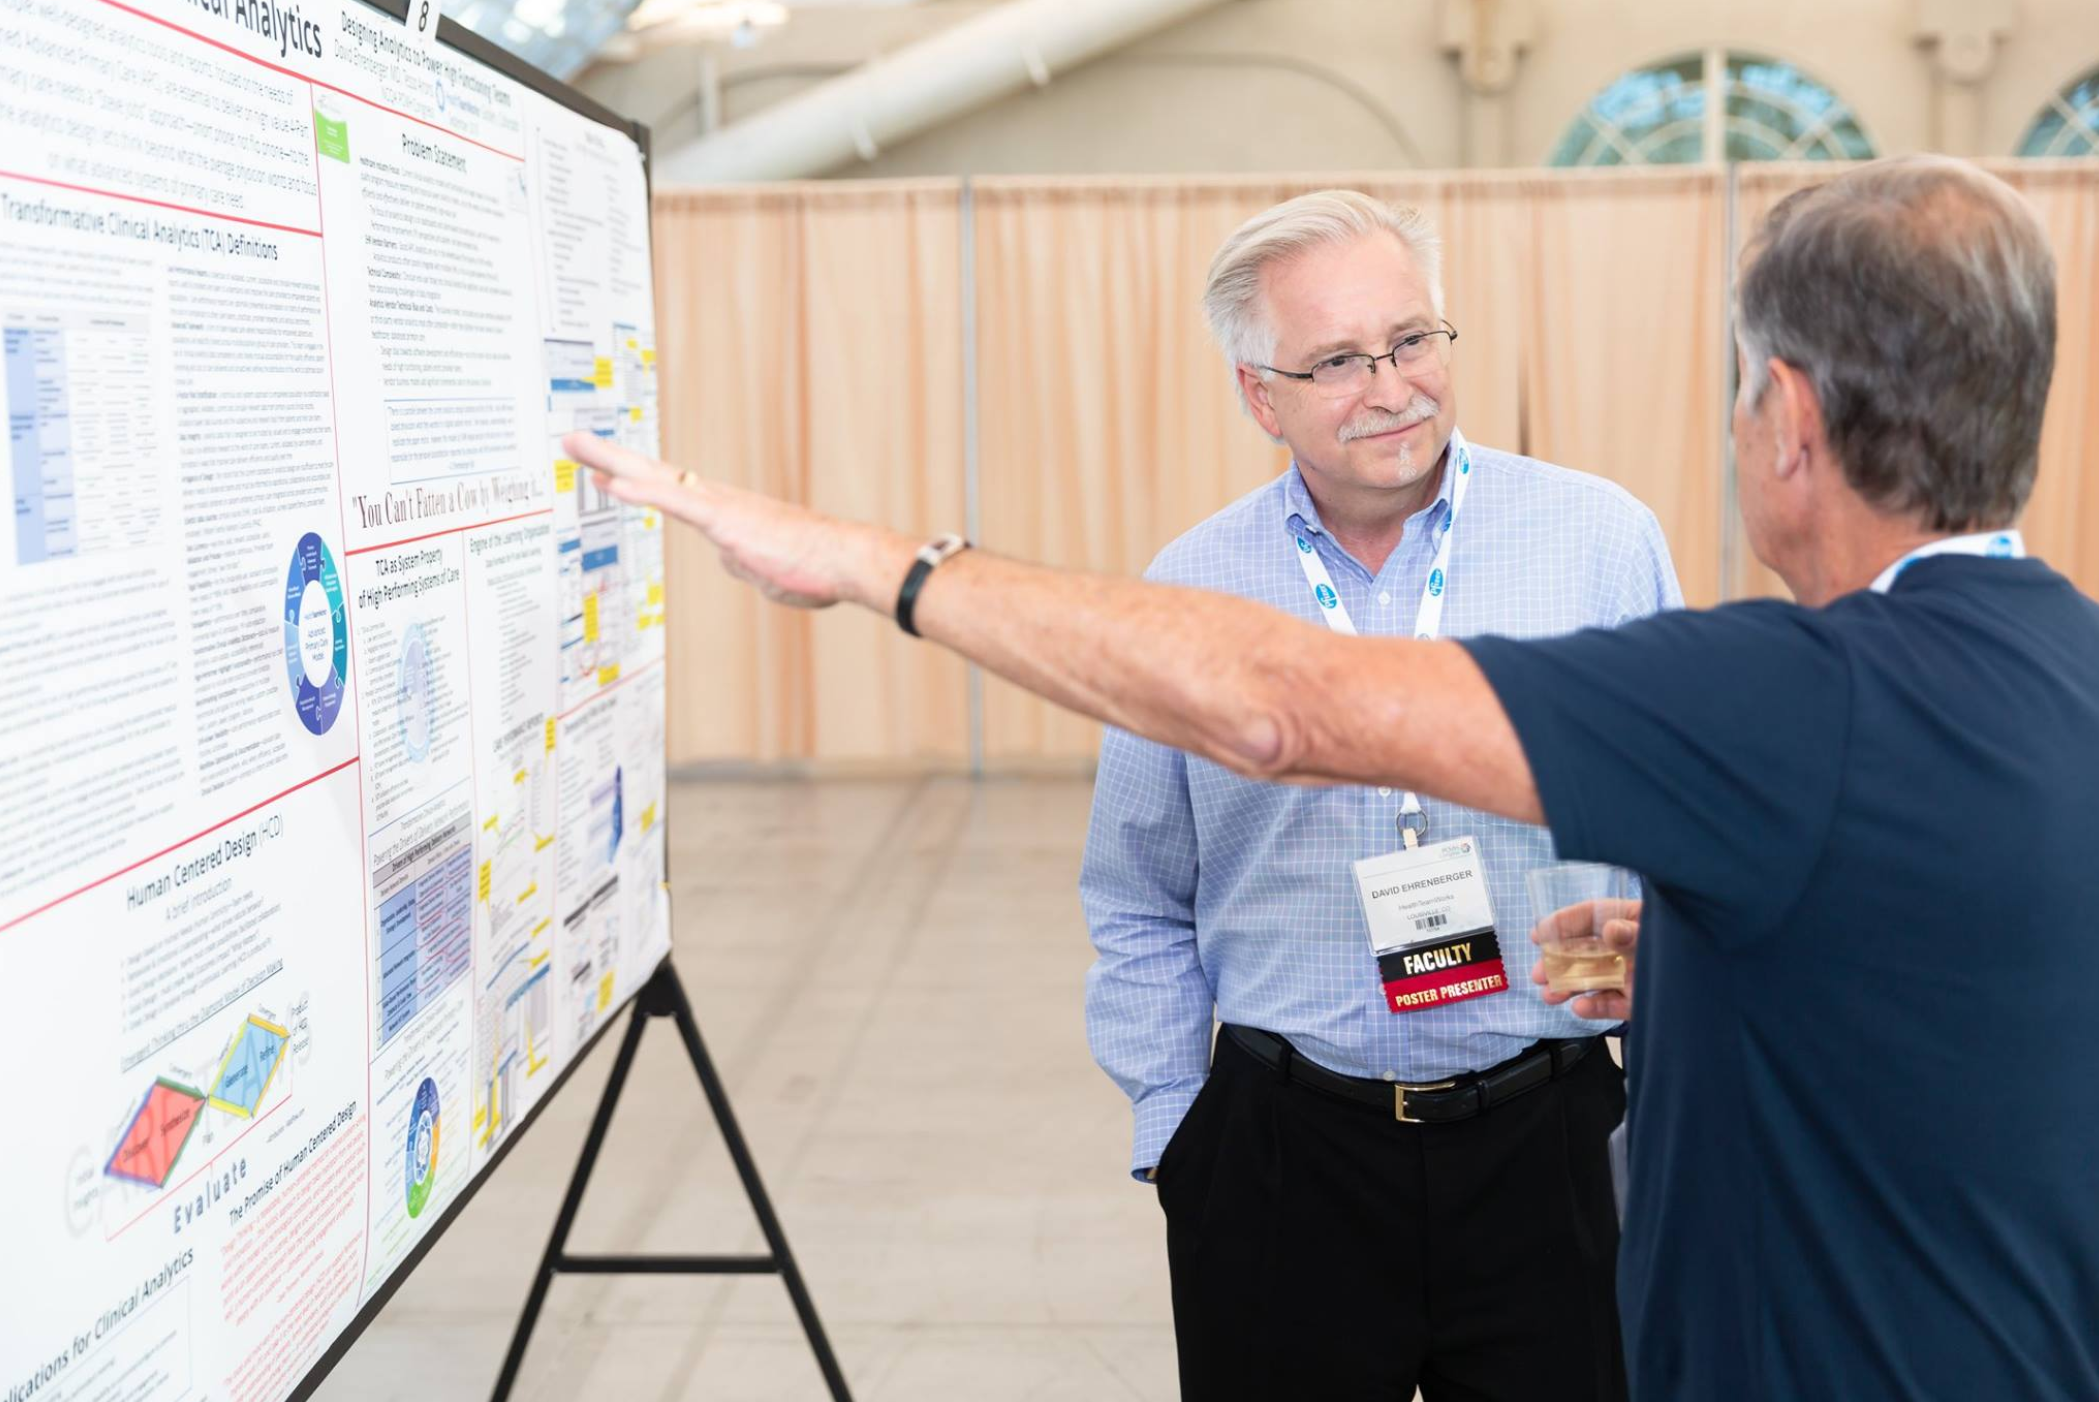 Dr. David Ehrenberger poster session